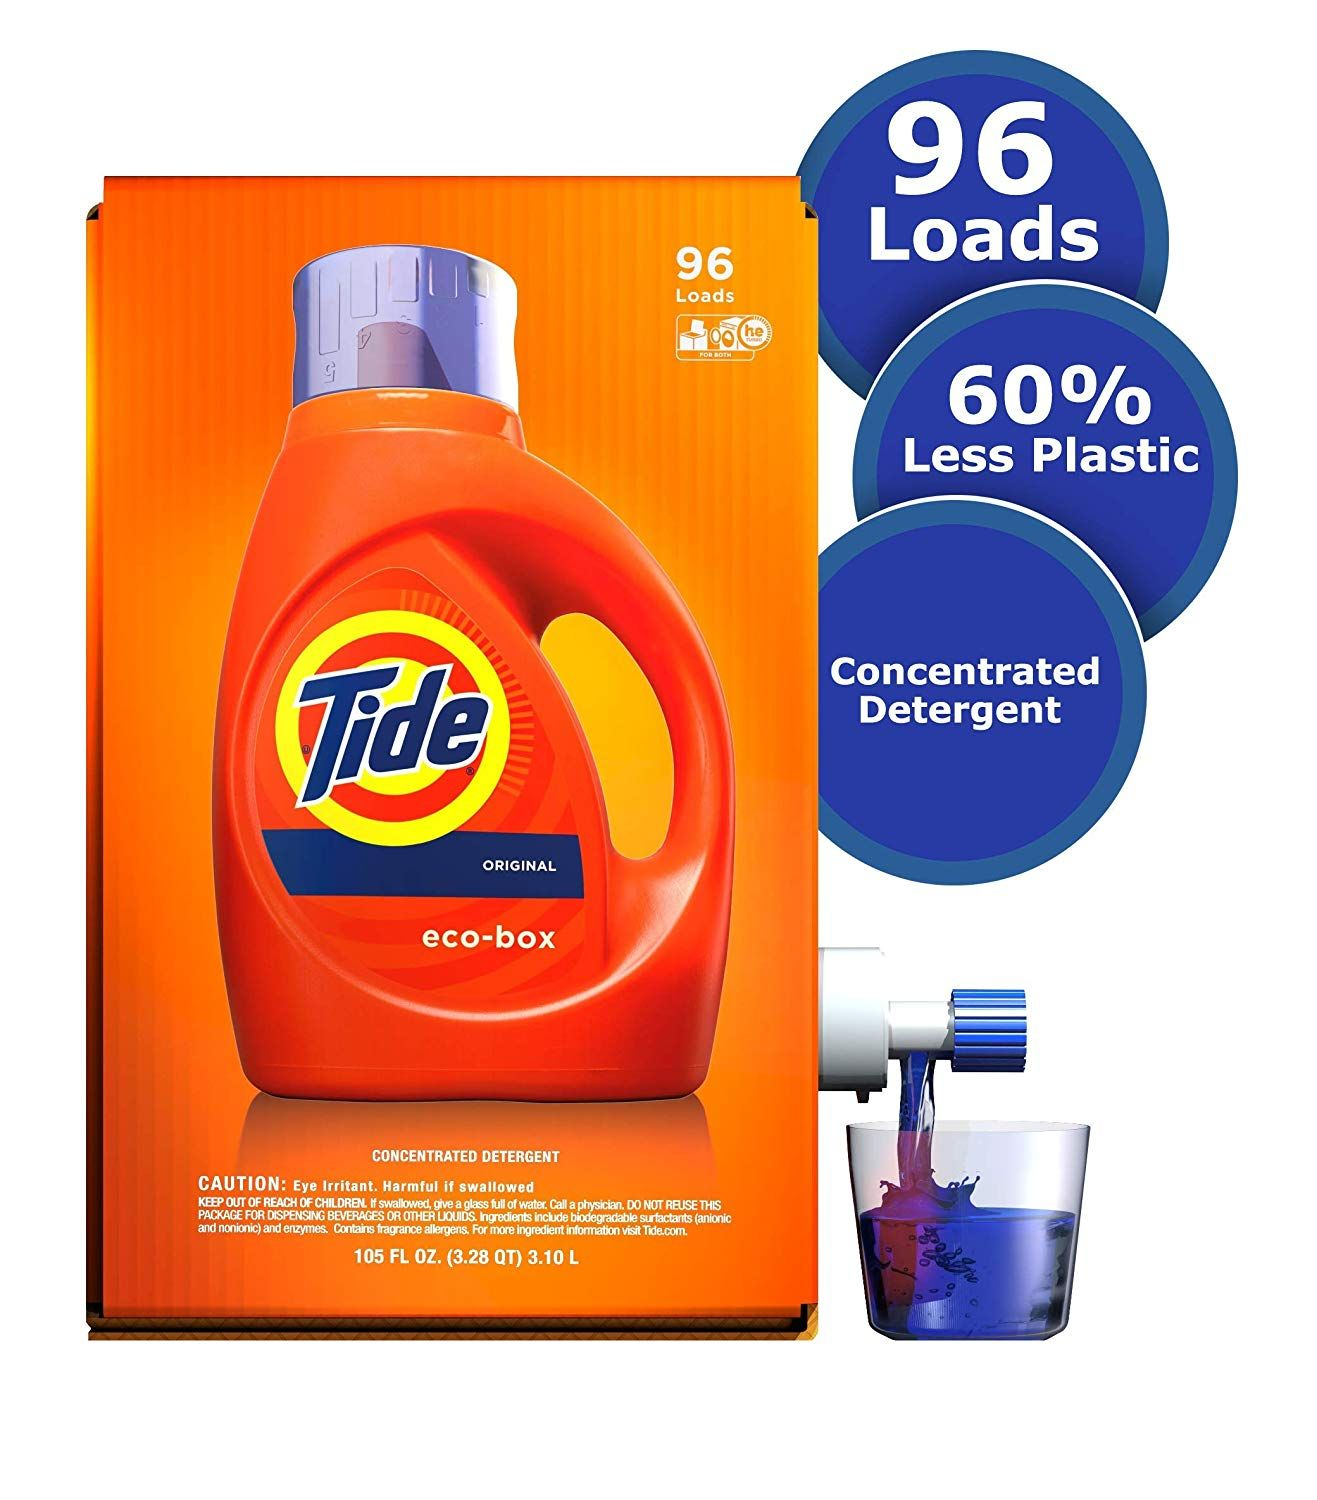 Tide Laundry Detergent Liquid Eco Box Concentrated Original Scent 105 Oz He Compatible 96 Loa In 2020 Tide Laundry Detergent Tide Laundry Liquid Laundry Detergent